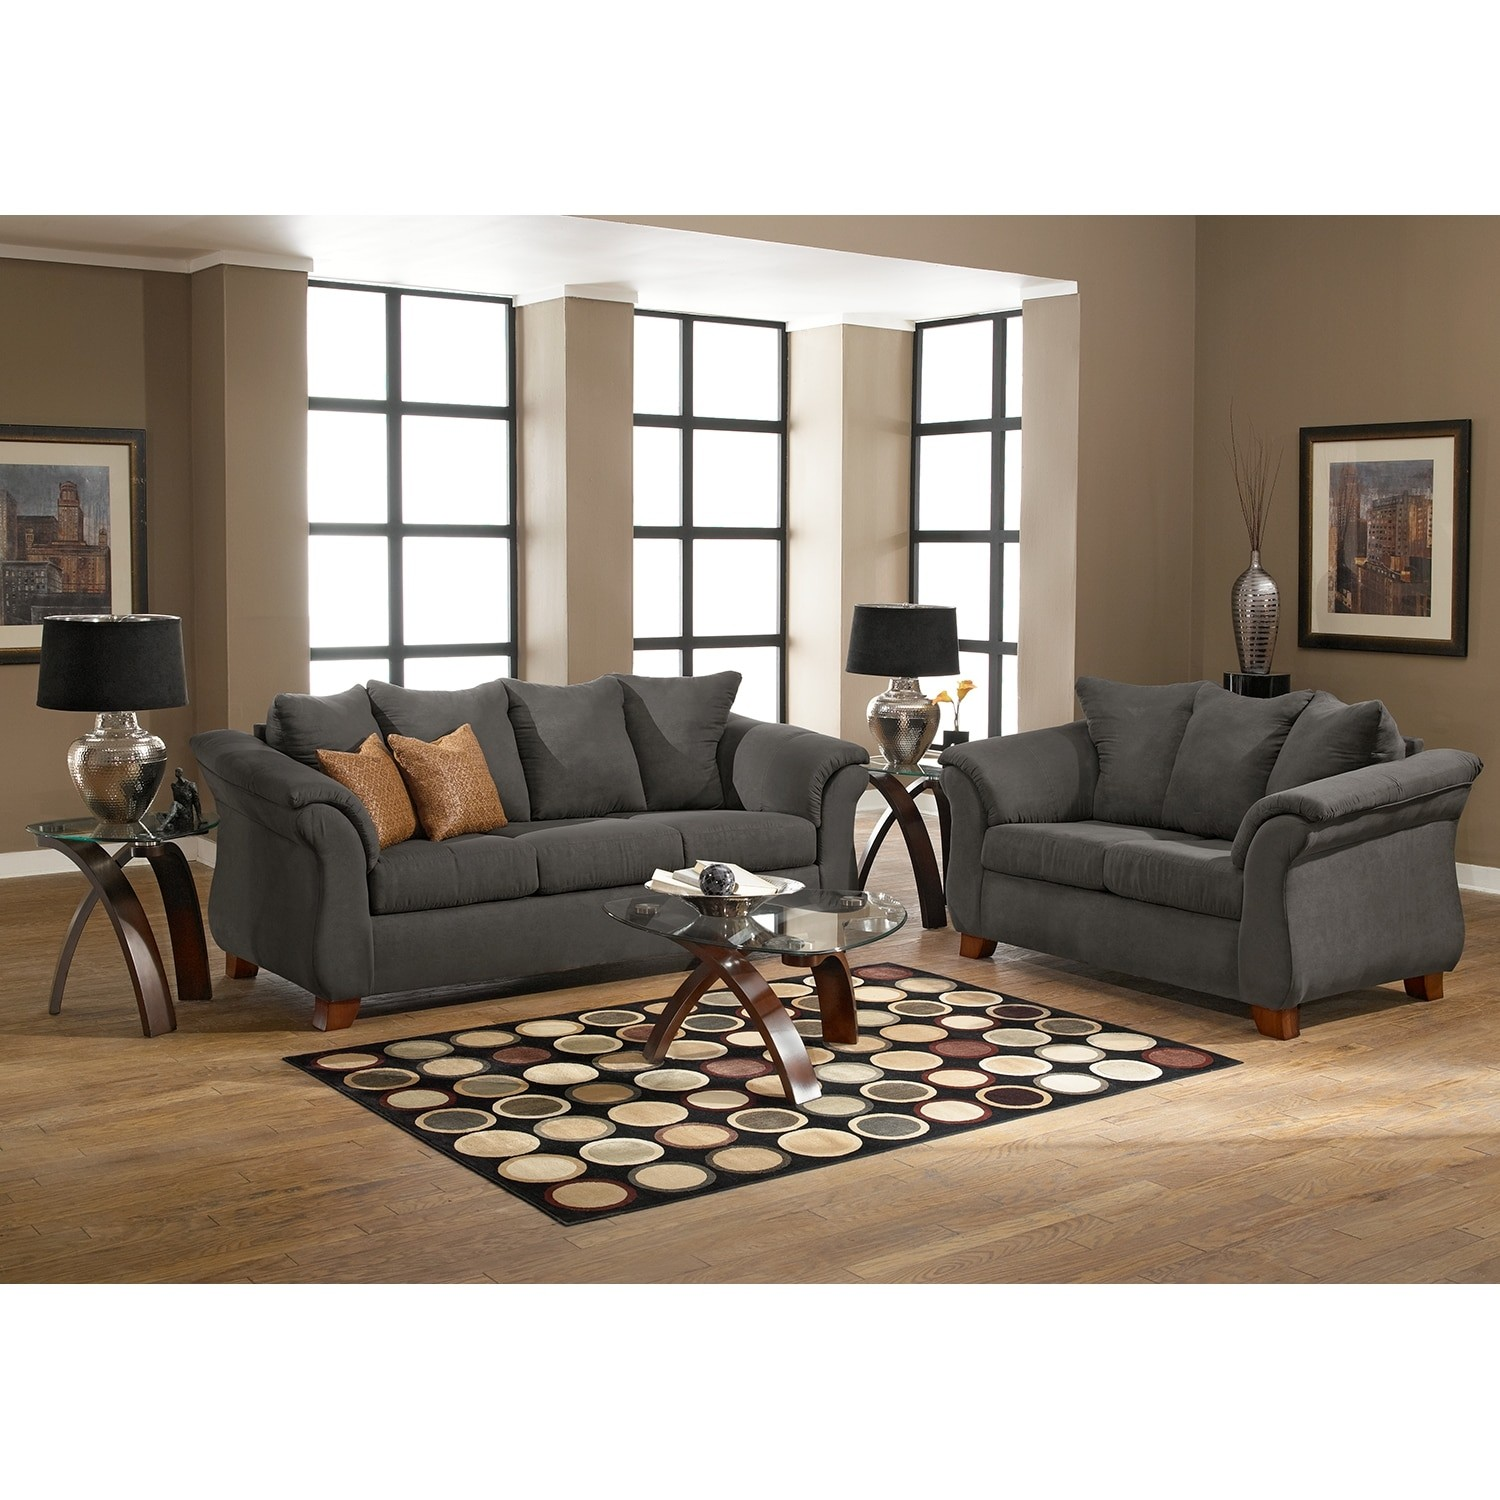 Sofa and Loveseat Incredible Adrian sofa and Loveseat Set Graphite Layout